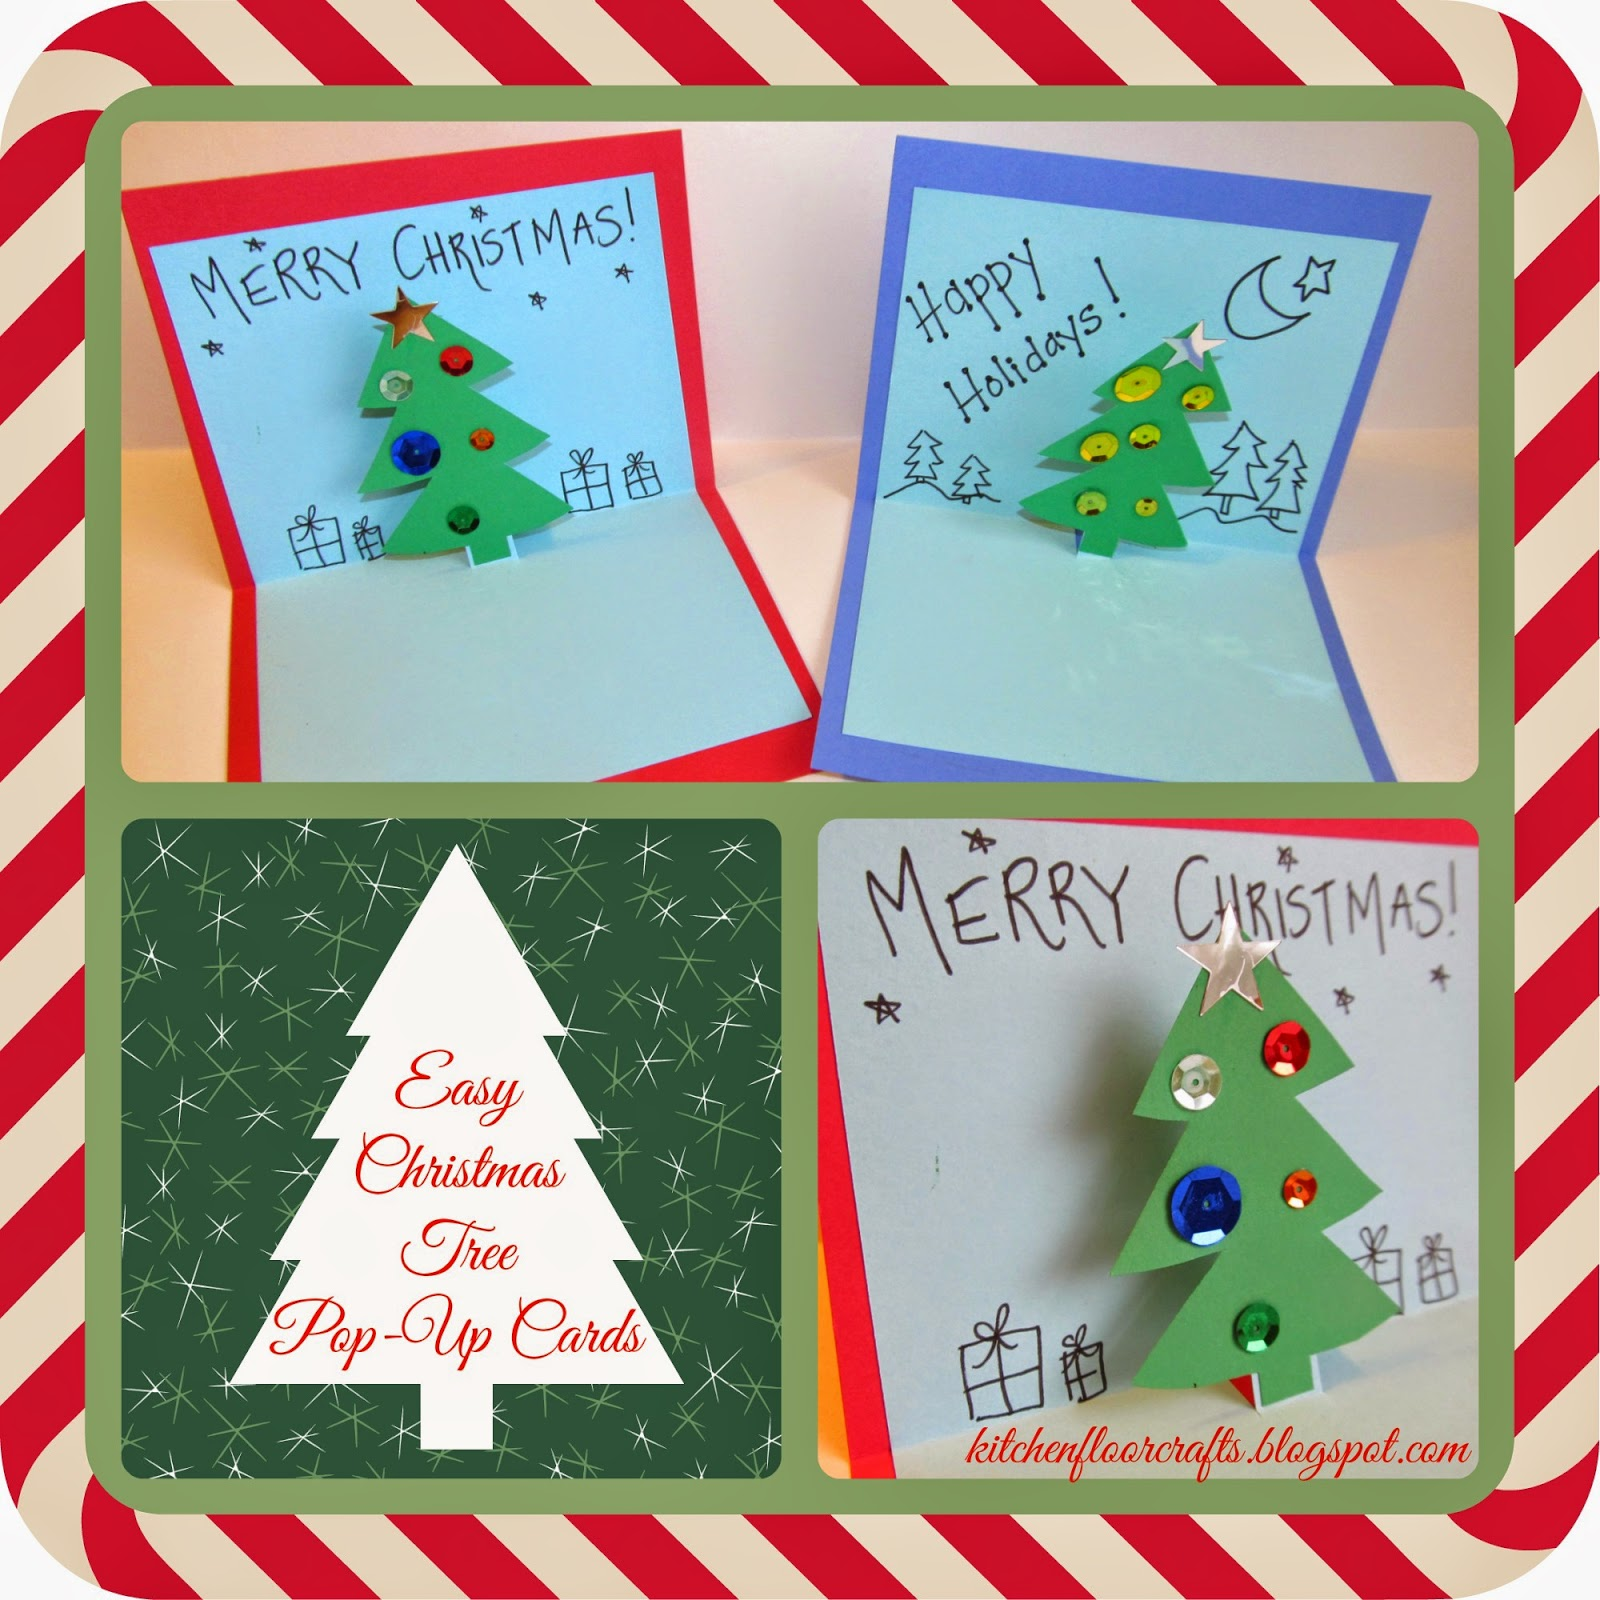 kitchen floor crafts easy christmas tree popup cards